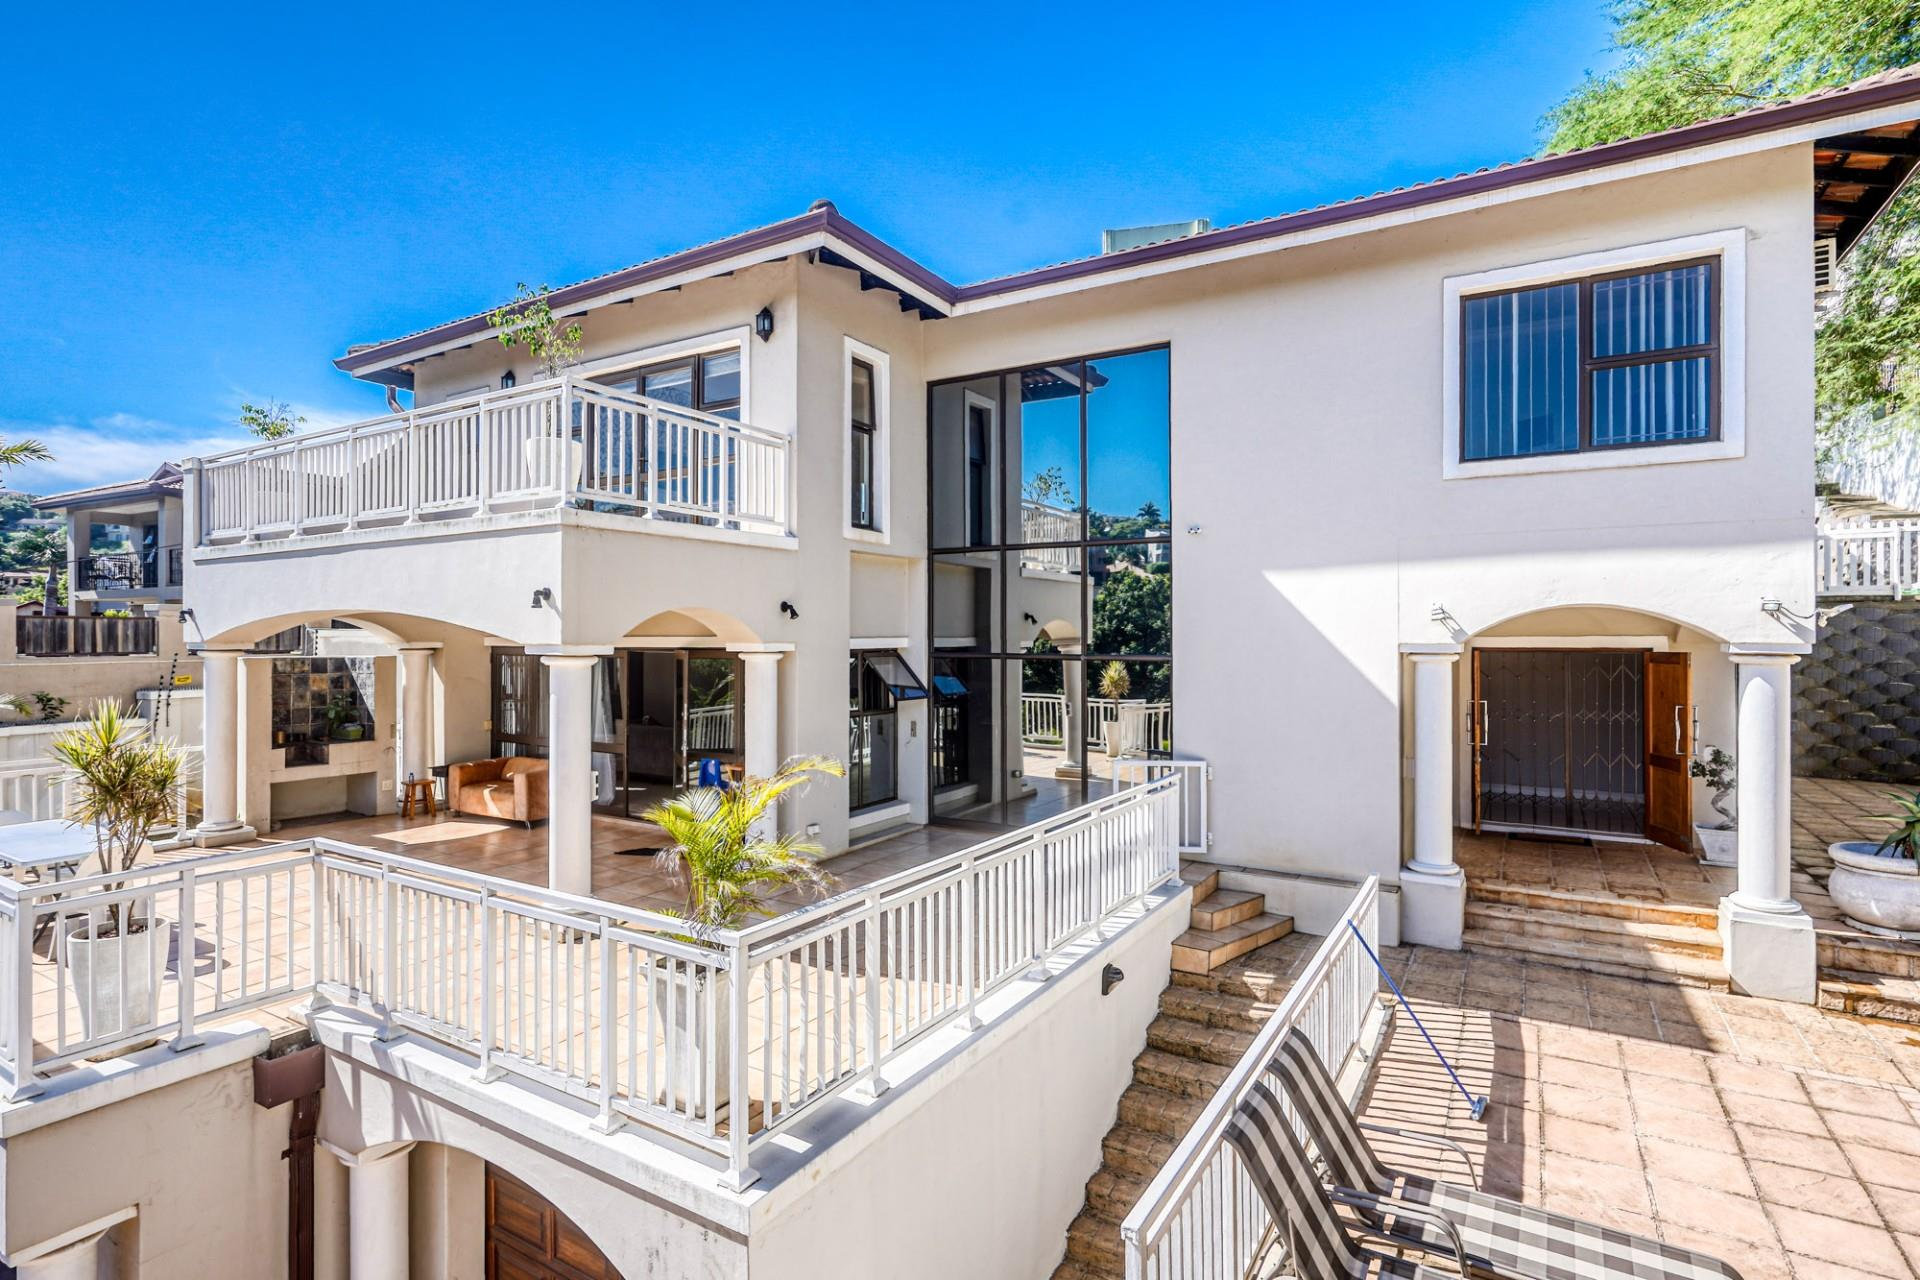 4 Bedroom House For Sale in La Lucia | RE/MAX™ of Southern ...